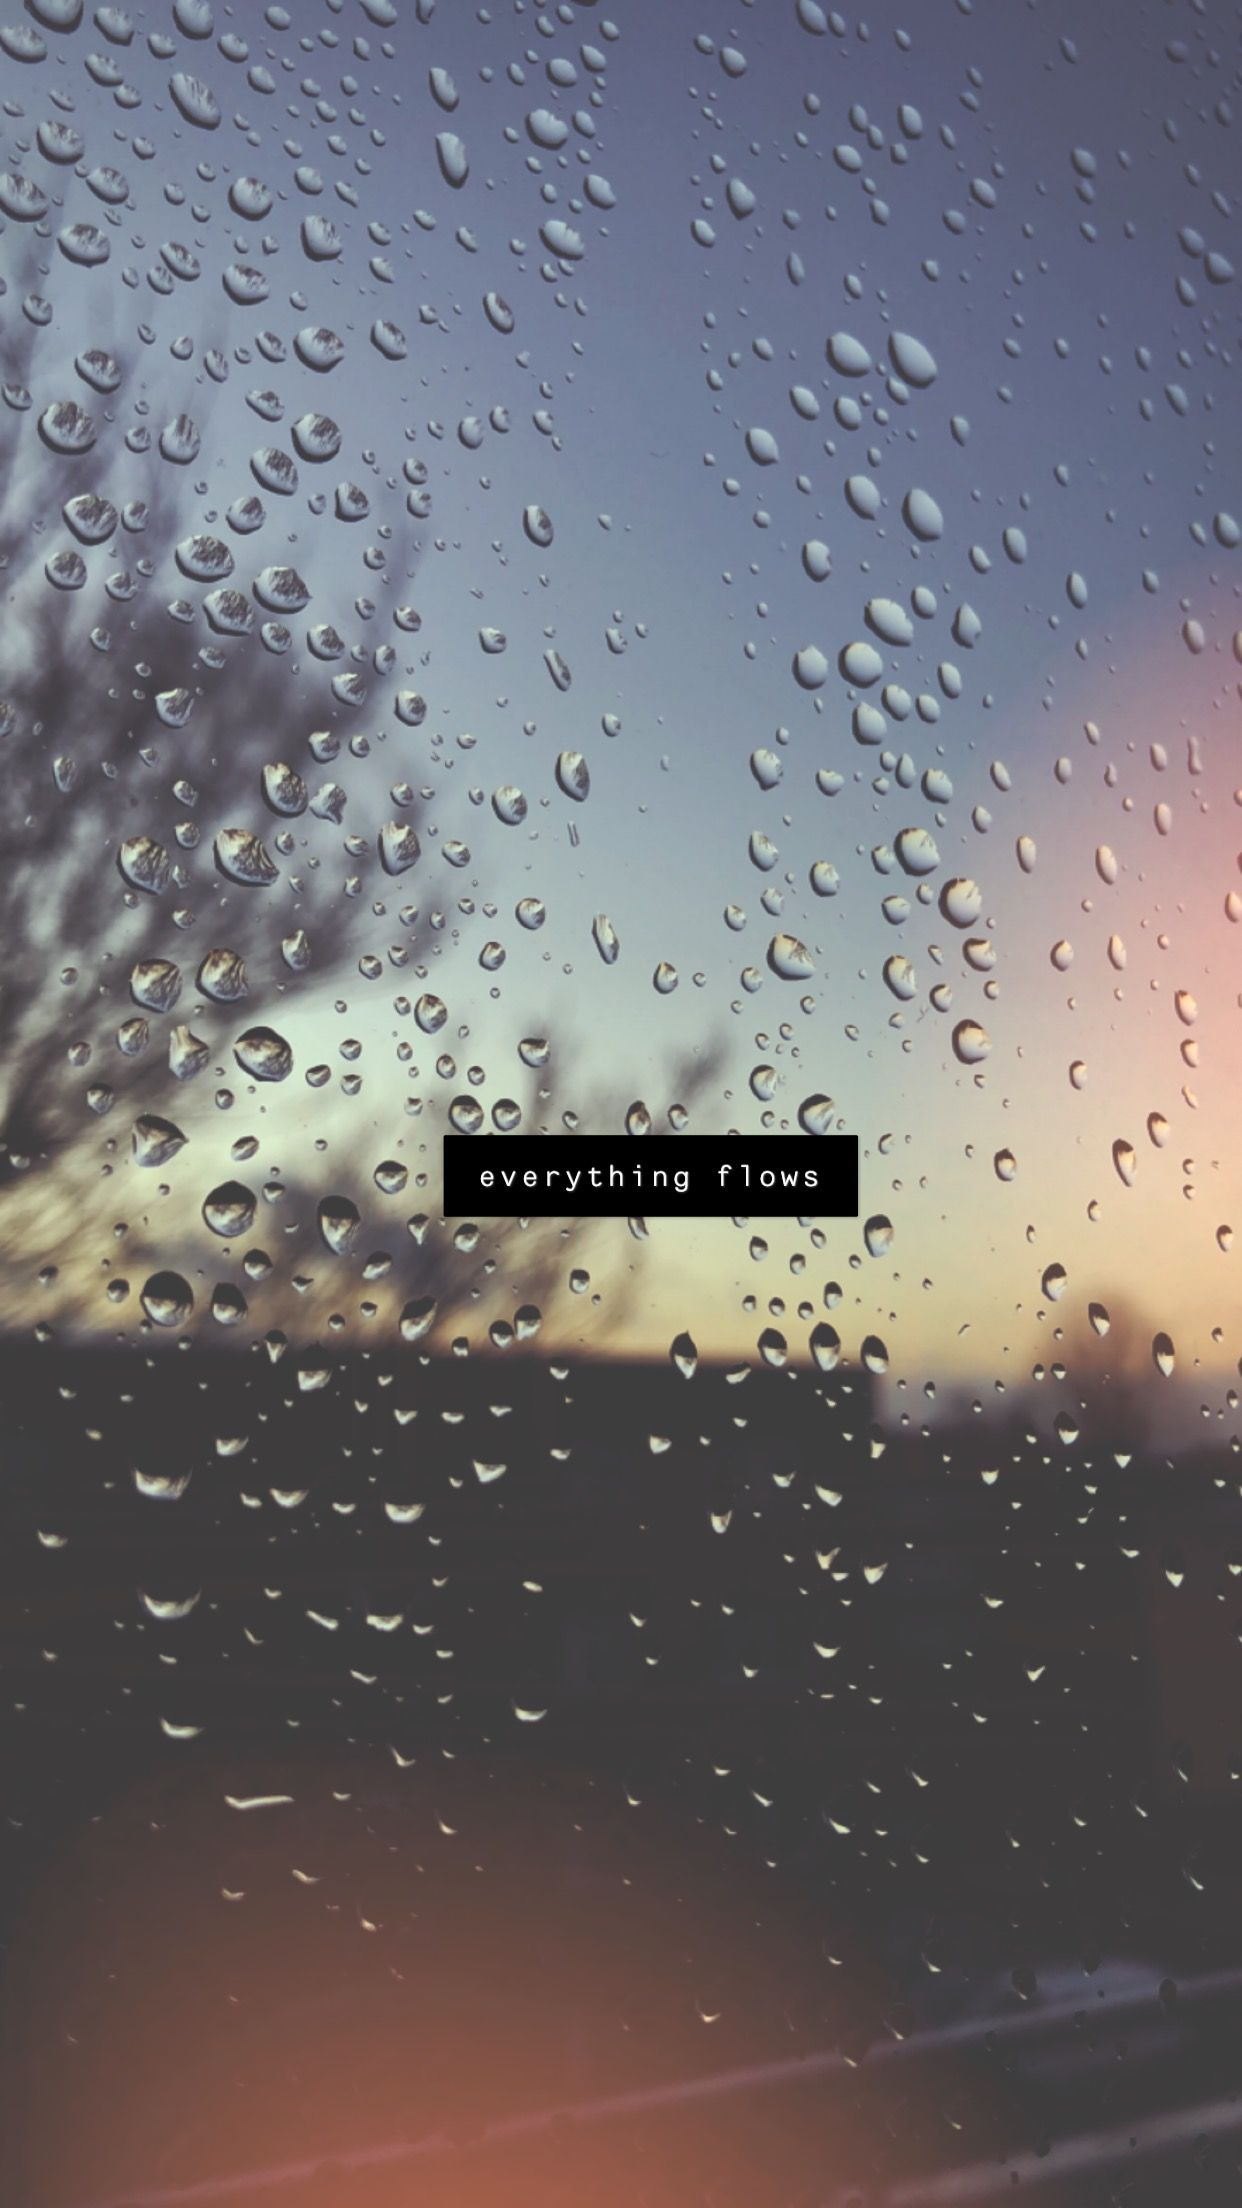 Everything Flows Rainy Day Quotes Rain Quotes Snap Quotes